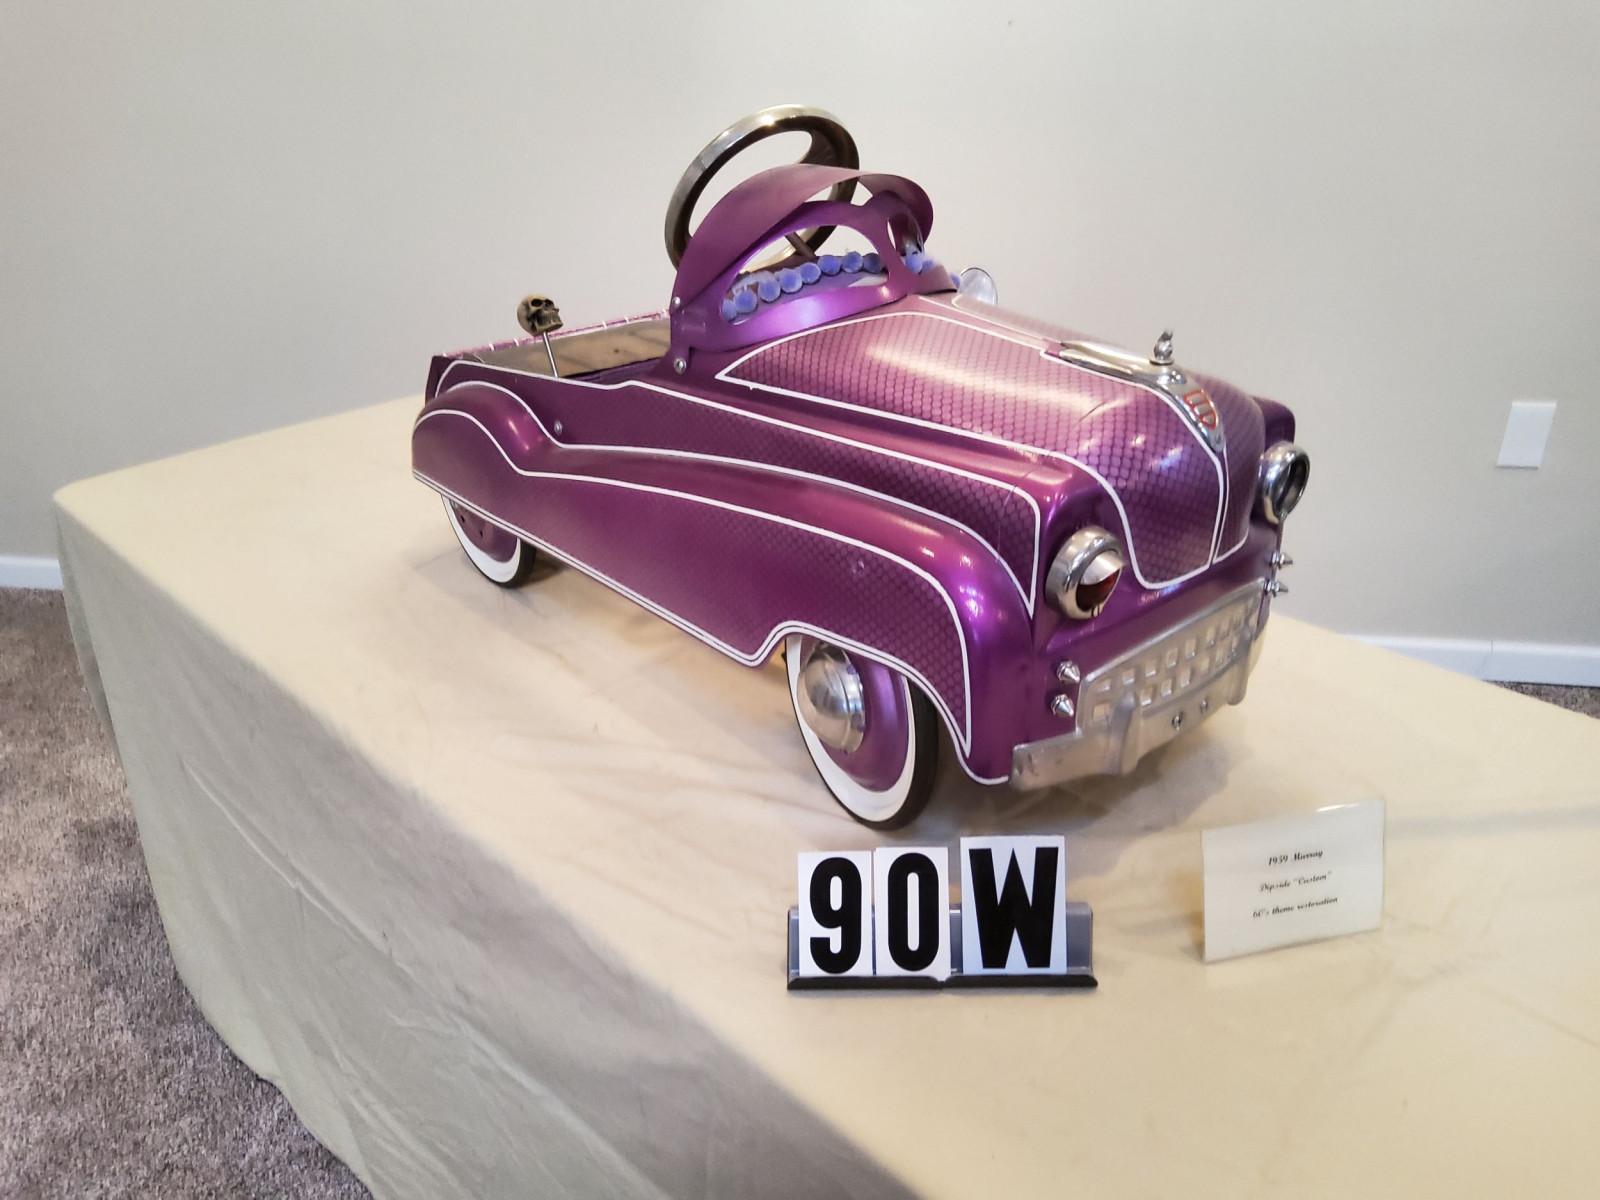 1959 Murray Dipside Custom Pedal Car - Image 2